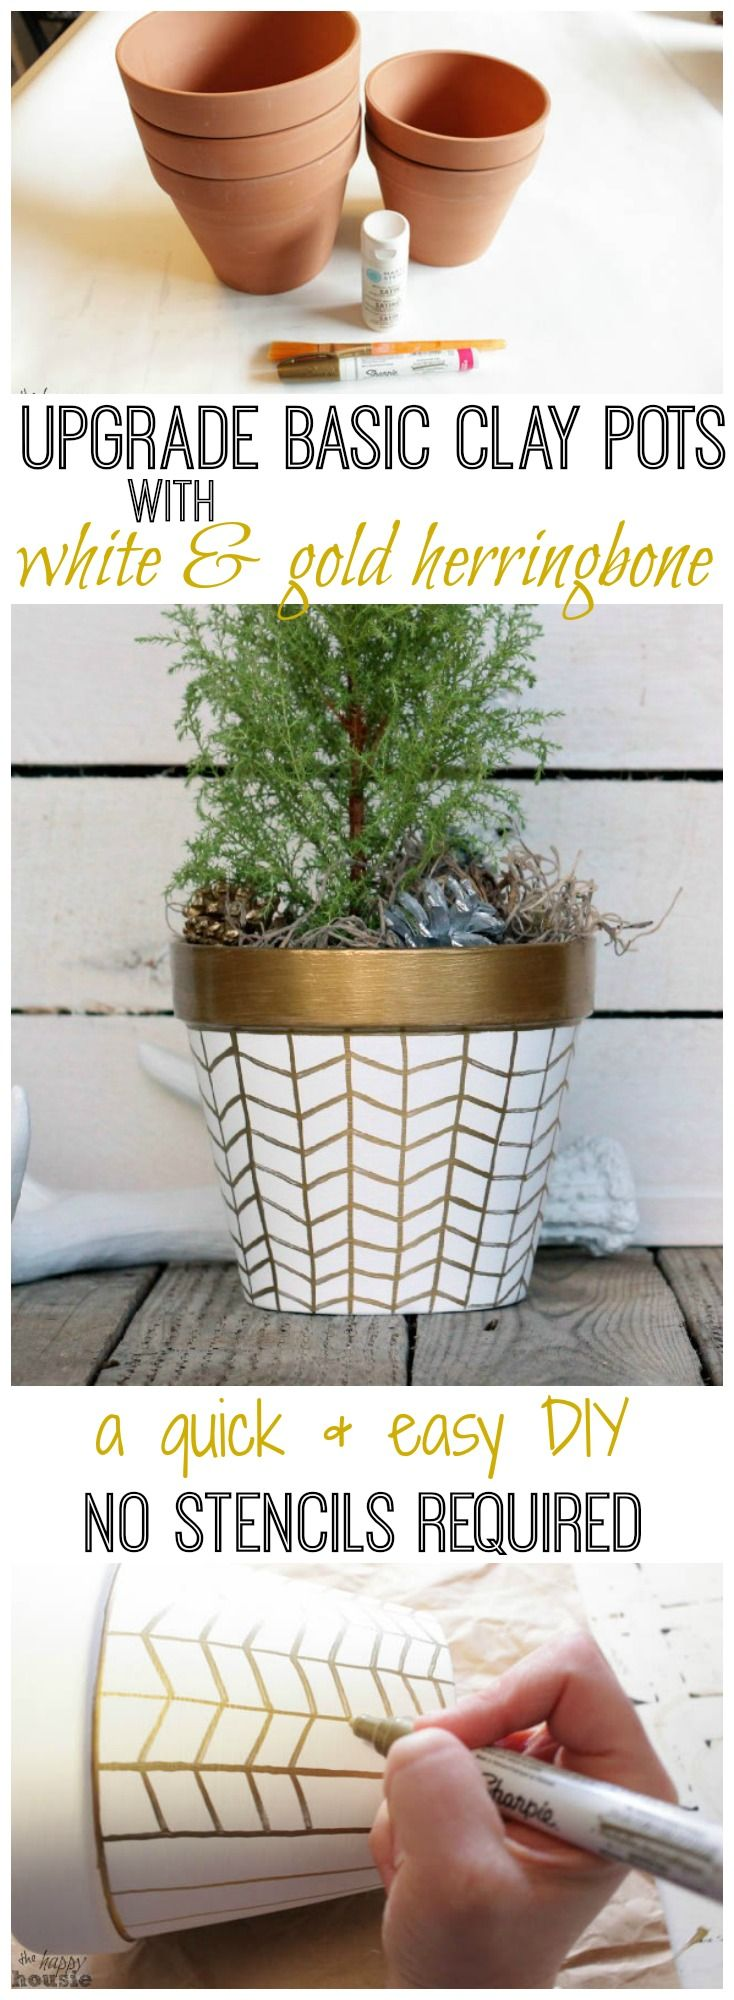 How to upgrade basic clay pots with a beautiful white and gold herringbone design a quick and easy DIY project with no fancy stencils required tutorial at thehappyhousie.com